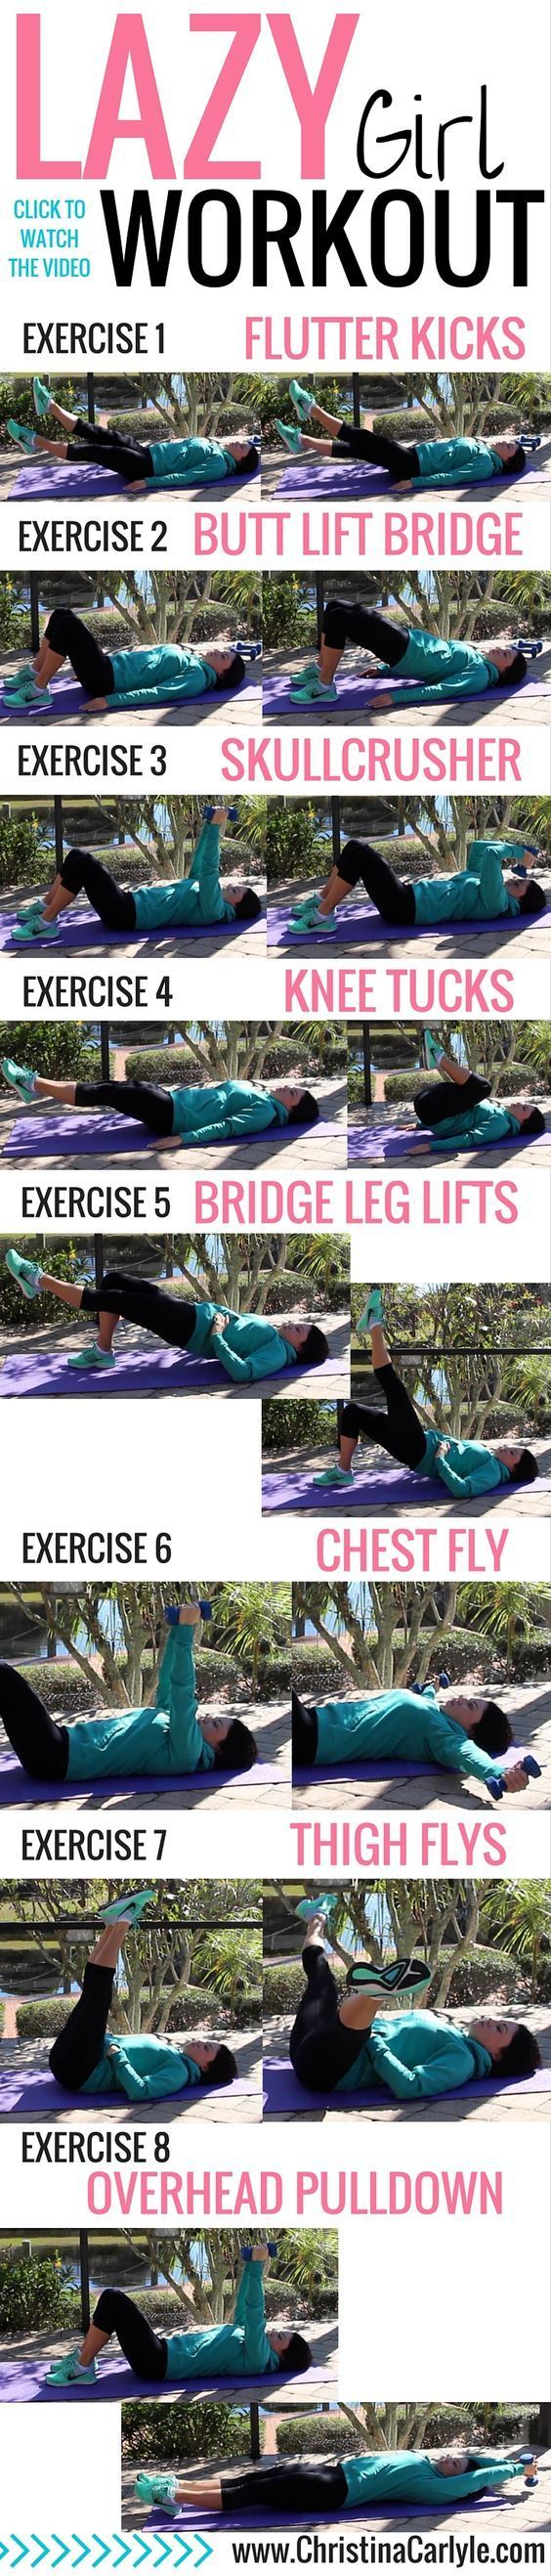 Lazy Girl Workout - Follow me for more workouts and weight loss tips that really work!